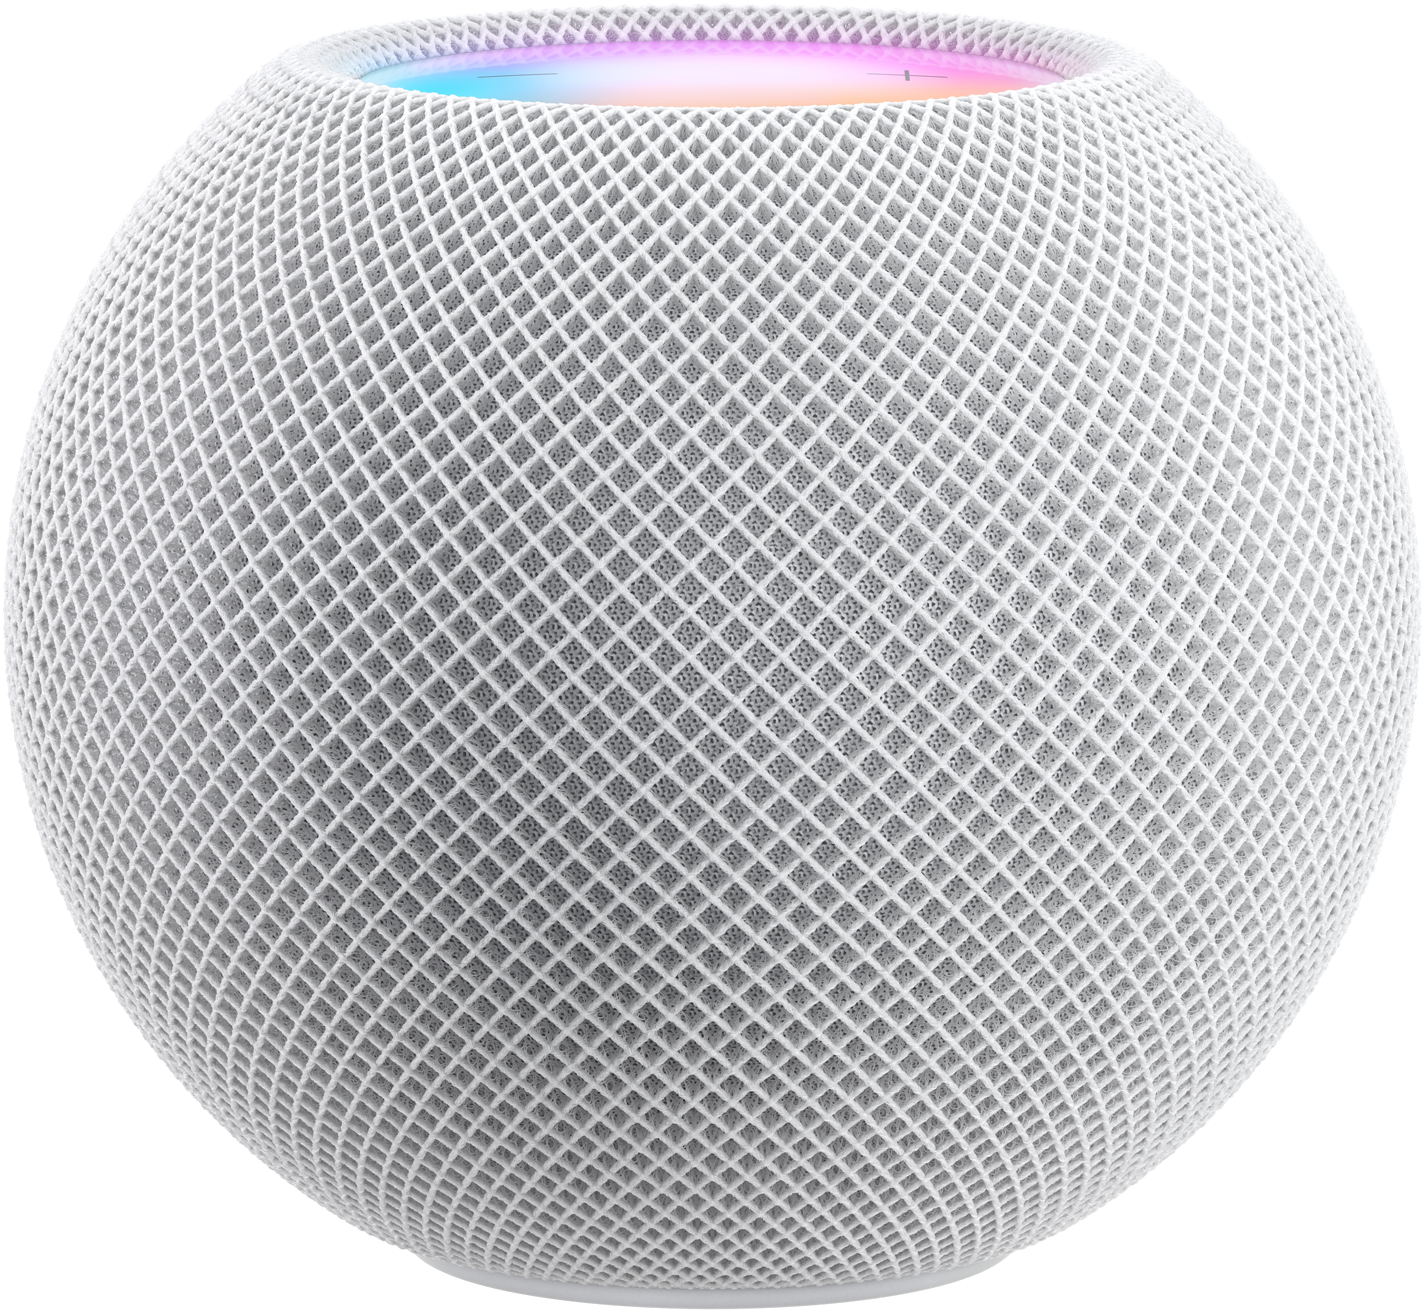 """White HomePod mini with colourful pixels in motion above it spelling the word """"mini""""."""